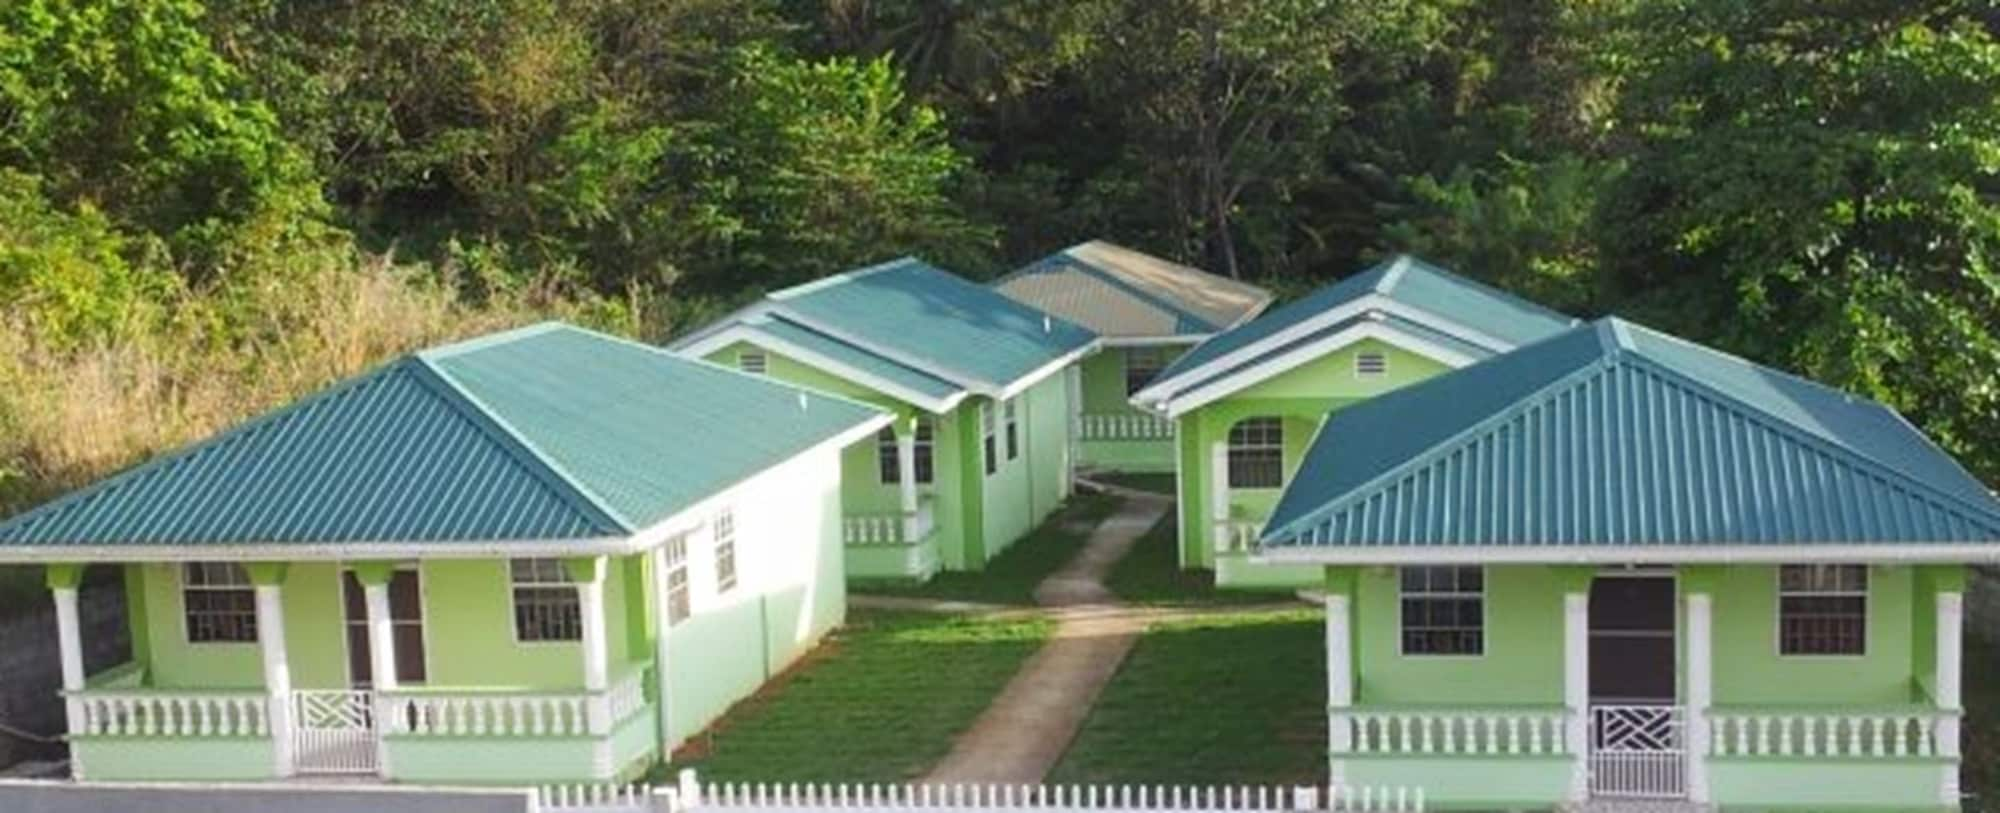 Digs Cottages,